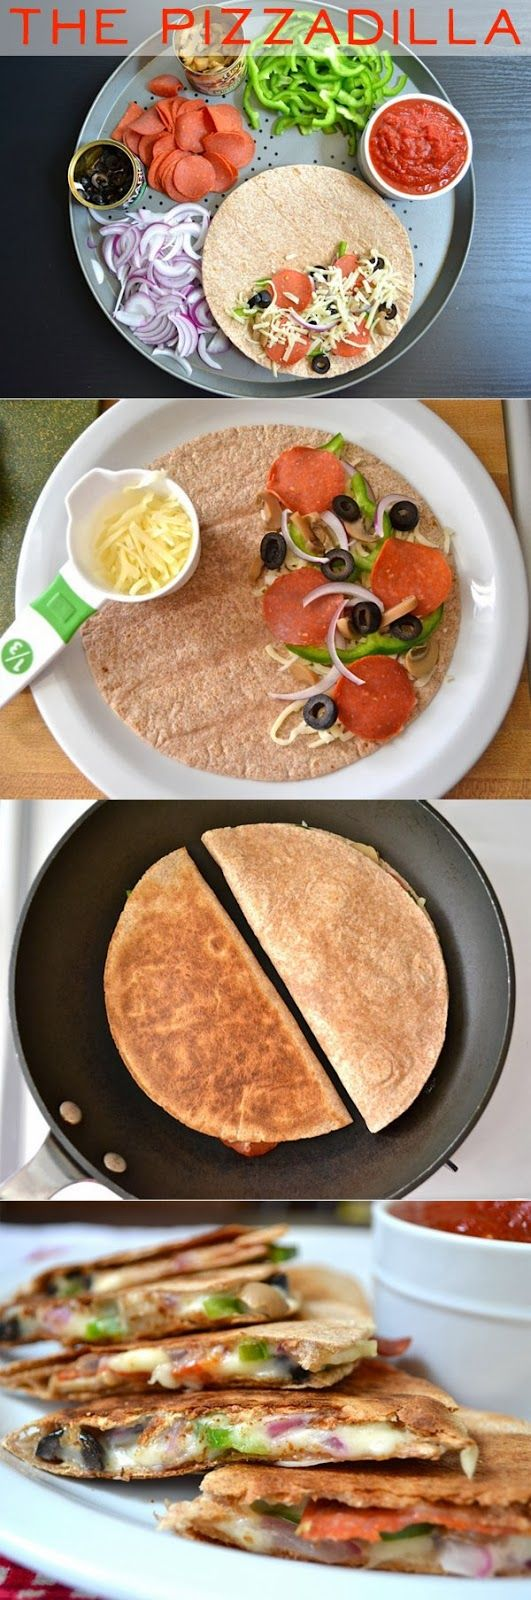 Yummy Recipes: The pizzadilla recipe Swap: Low sodium pepperonis Wheat low carb wrap low sodium cheese (soy?)